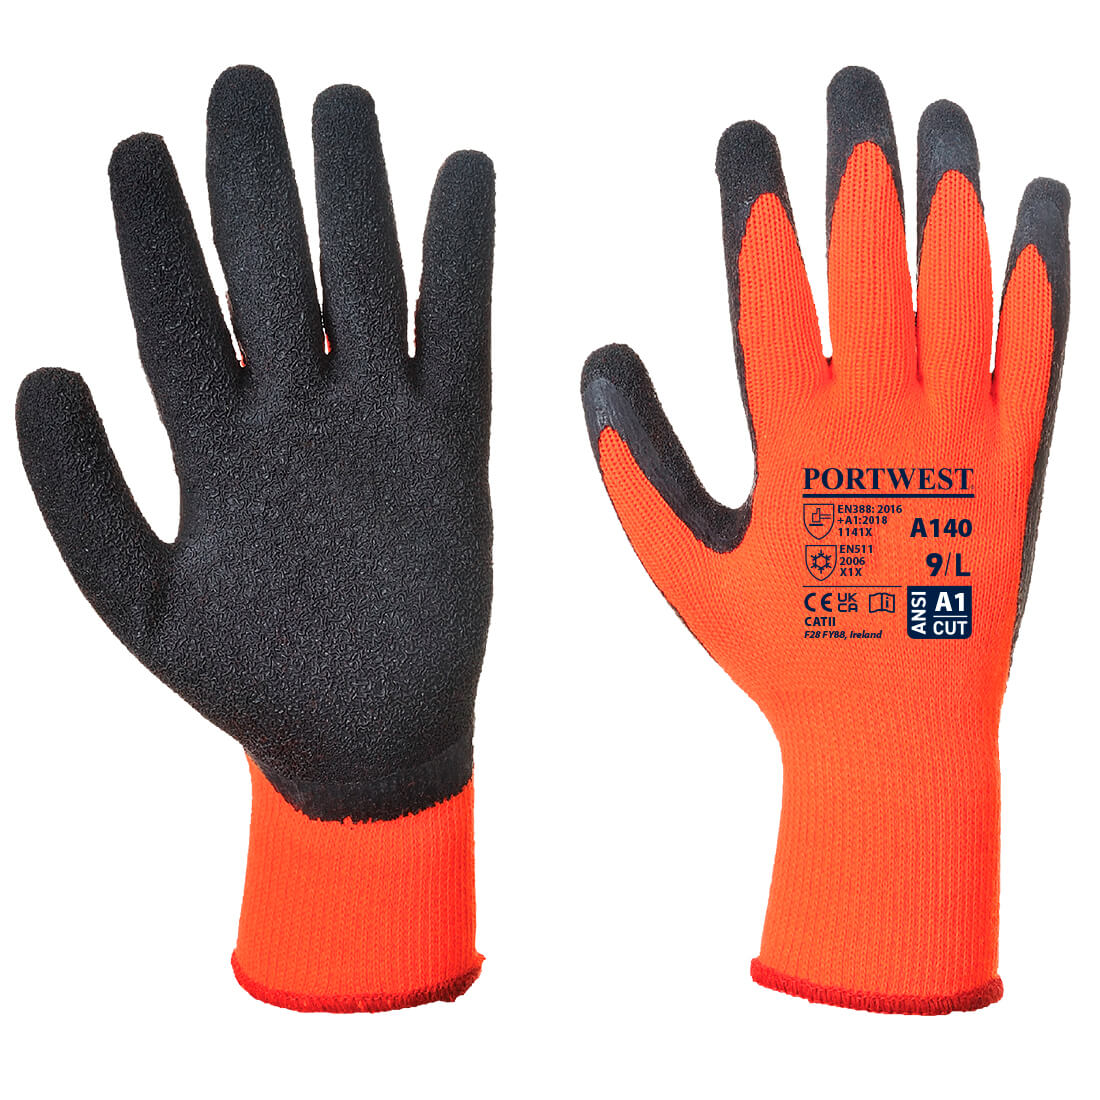 Thermal Grip Glove, OrBk      Size Large B/Fit